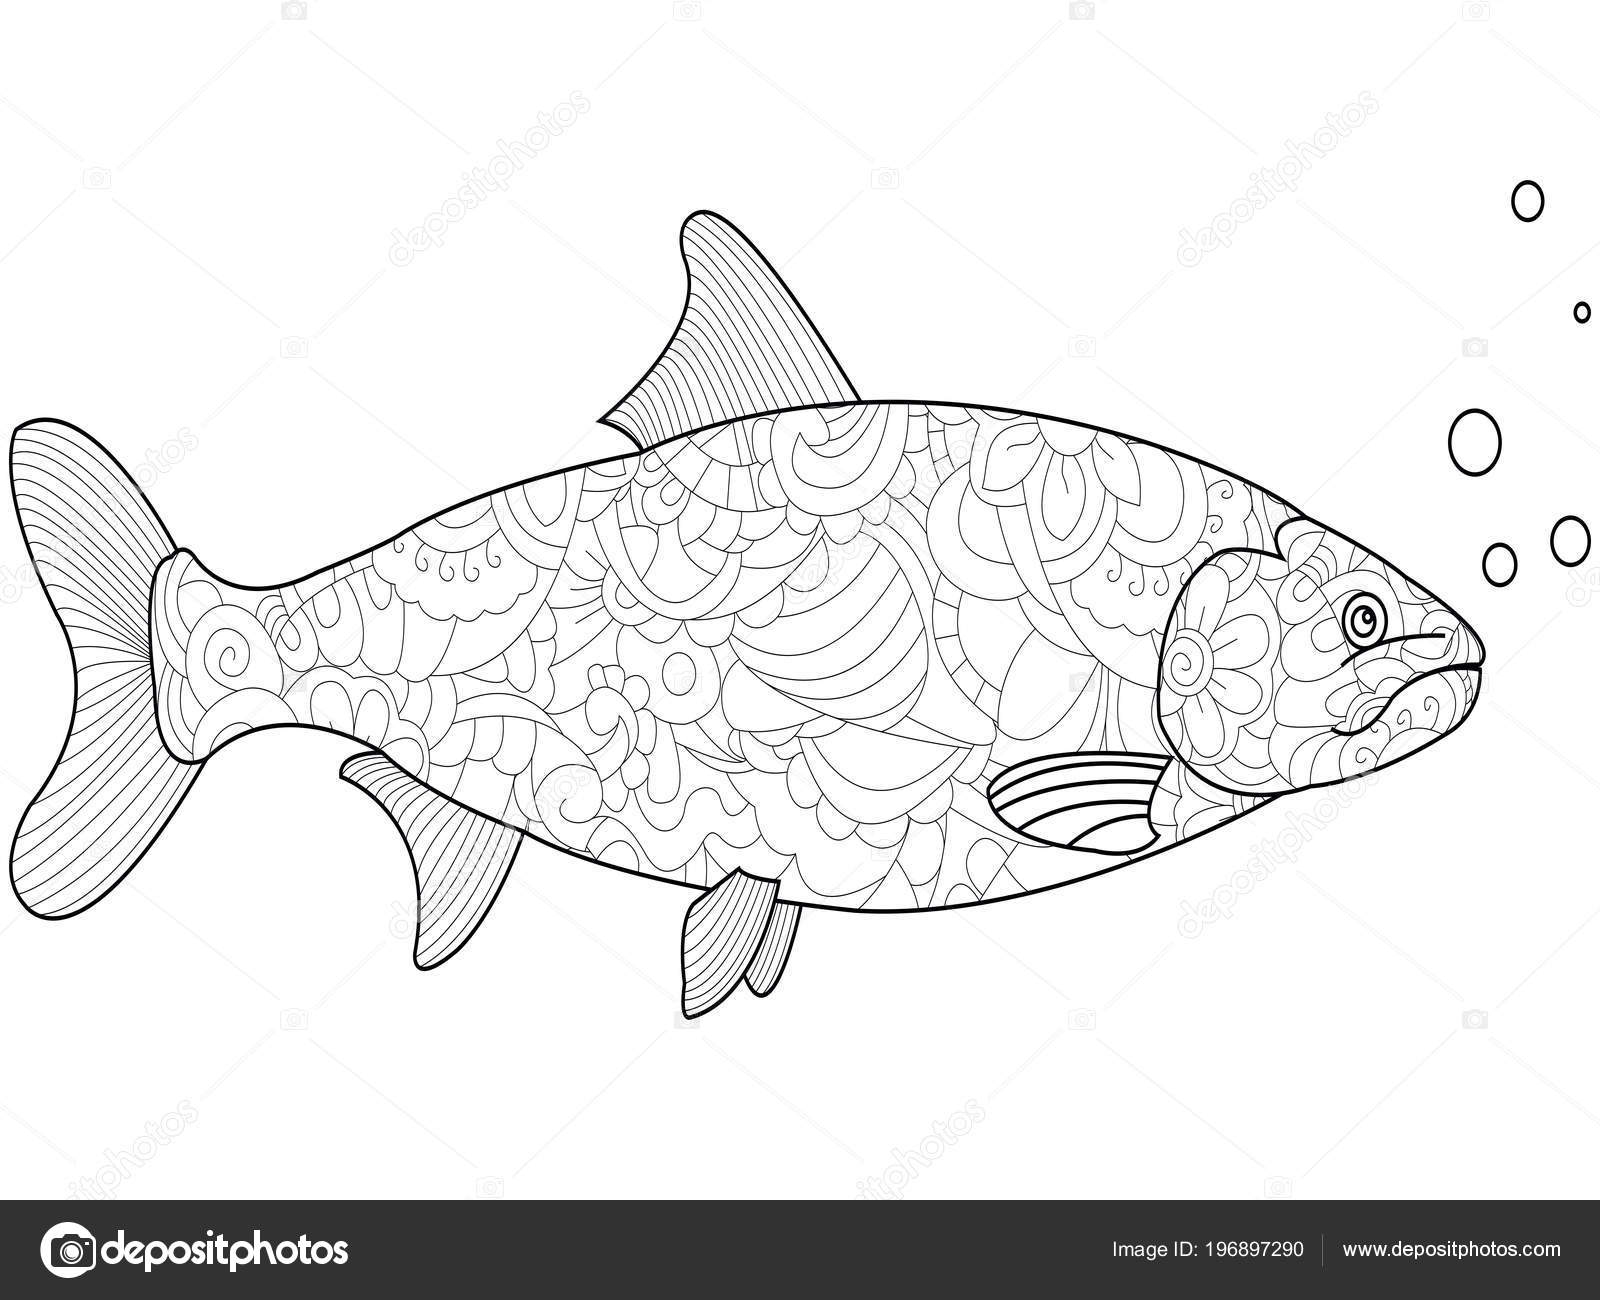 Anti Stress Coloring For Adults And Children Fish Salmon Black